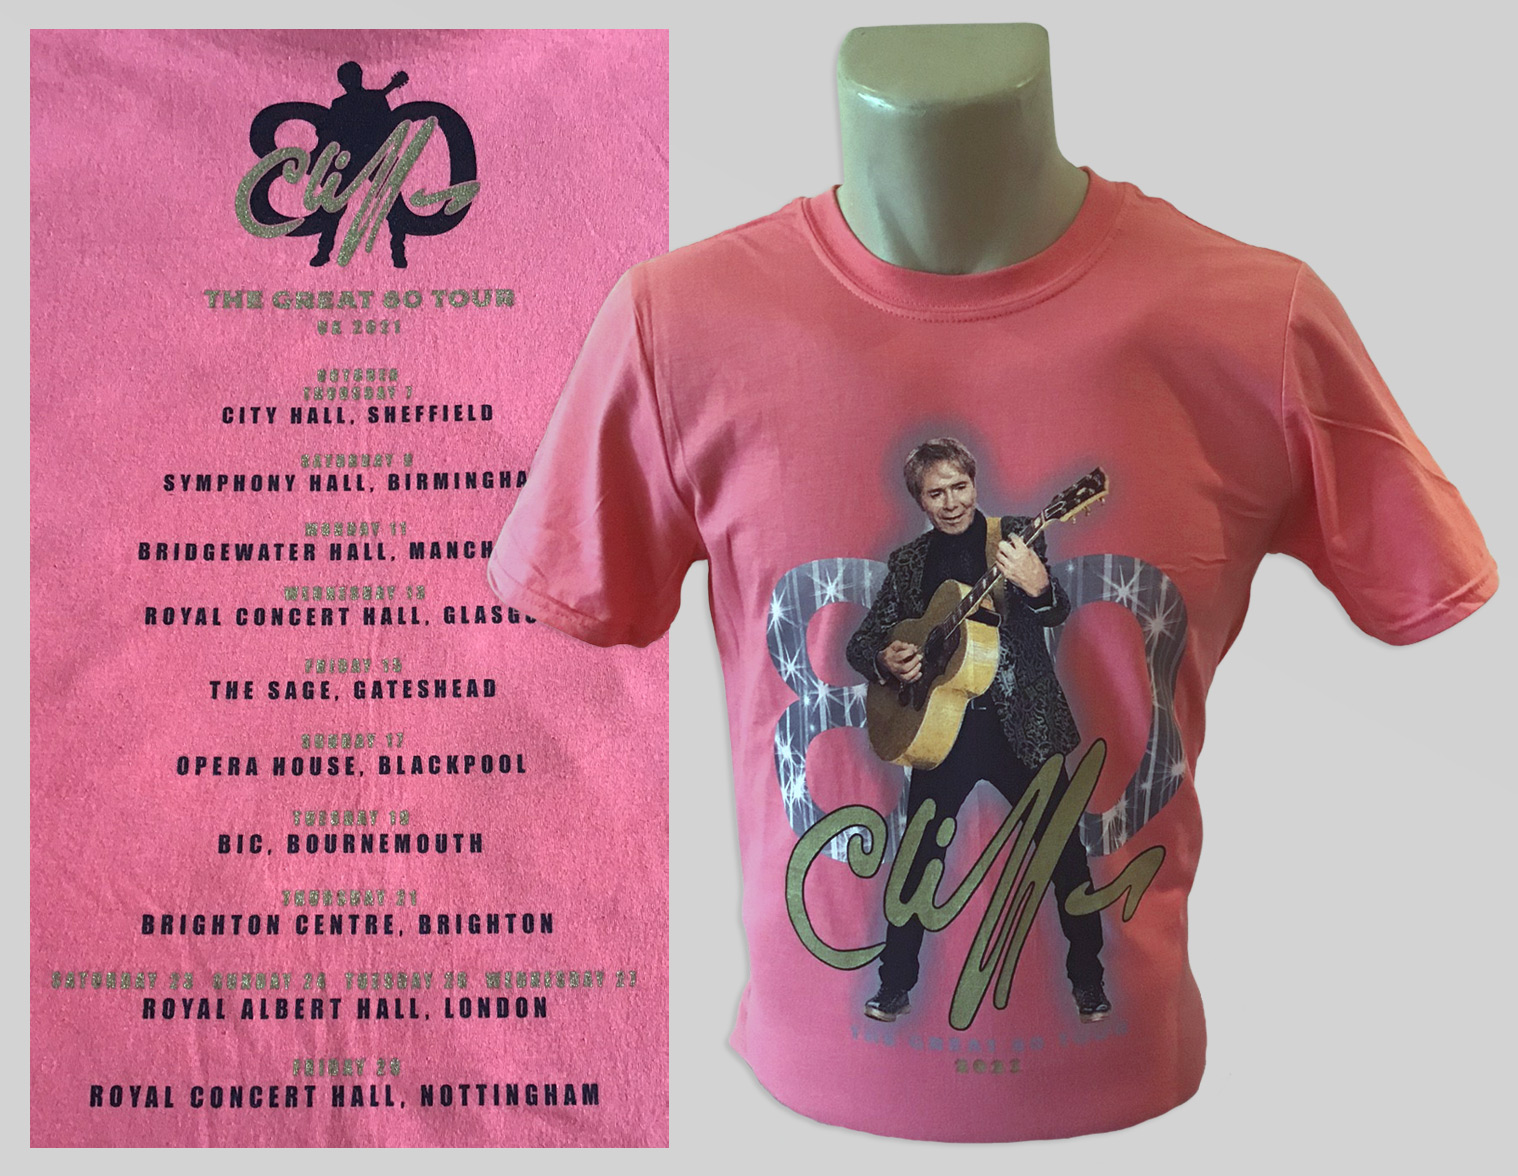 Cliff Richard Coral Silk/Salmon (Pink) soft spun cotton shirt with Great 80 design and OPTIONAL tour dates on the back.